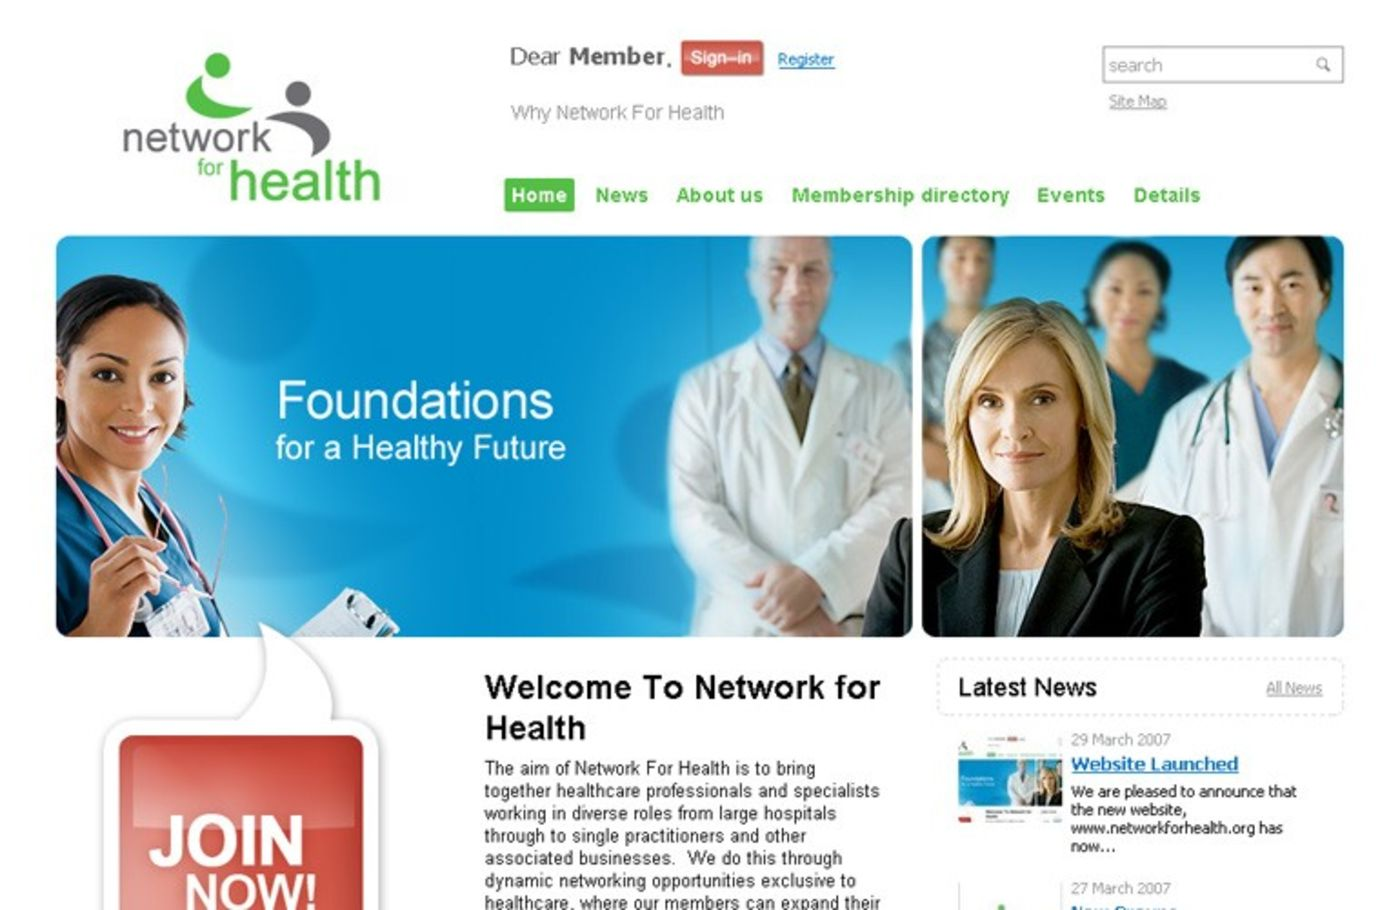 Network For Health Homepage header